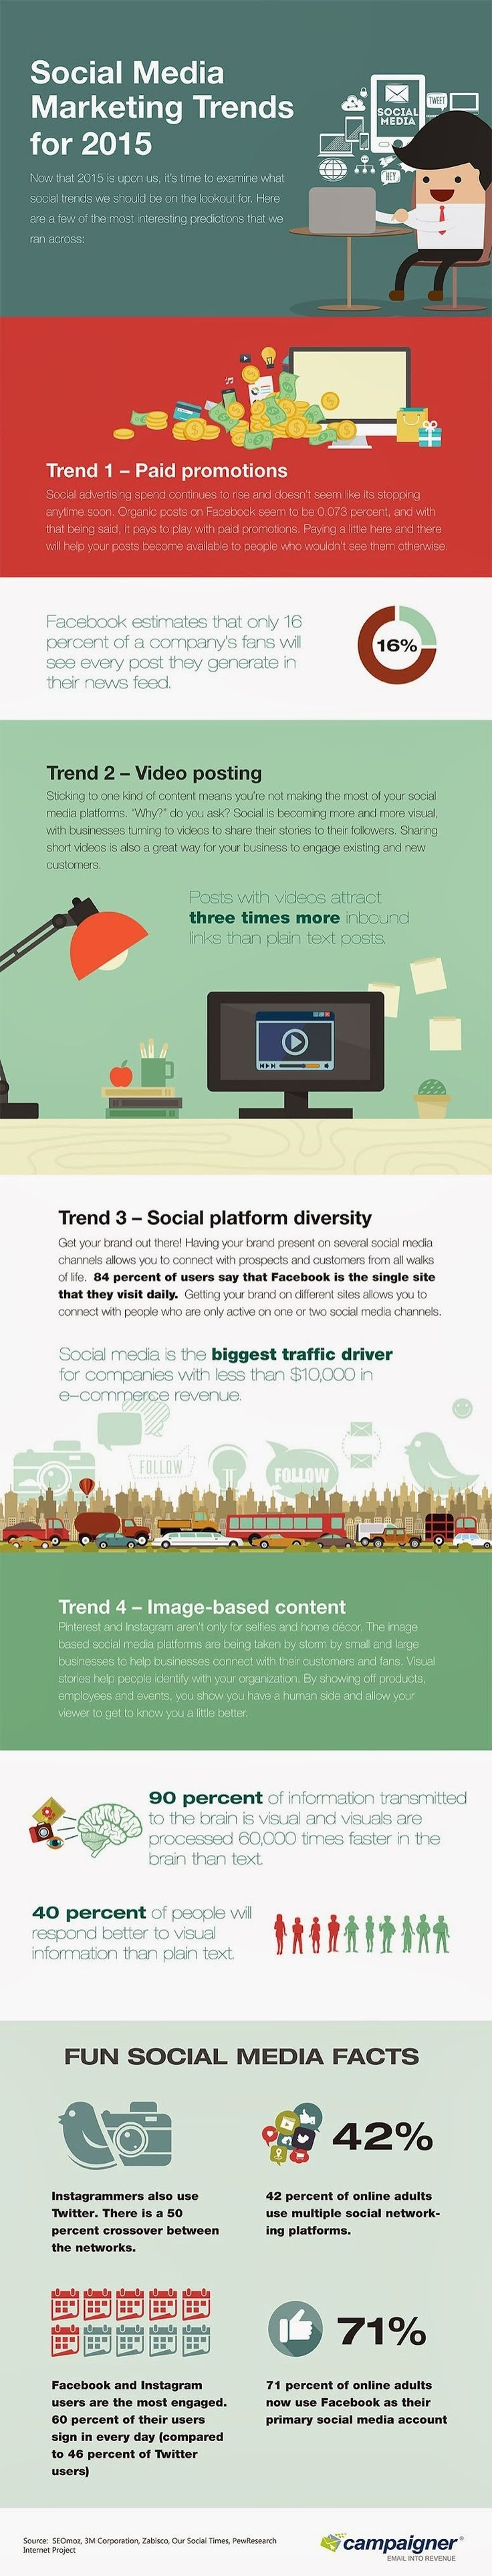 SocialMedia Marketing Trends for 2015 F42324176691f3815b40418f21409da3